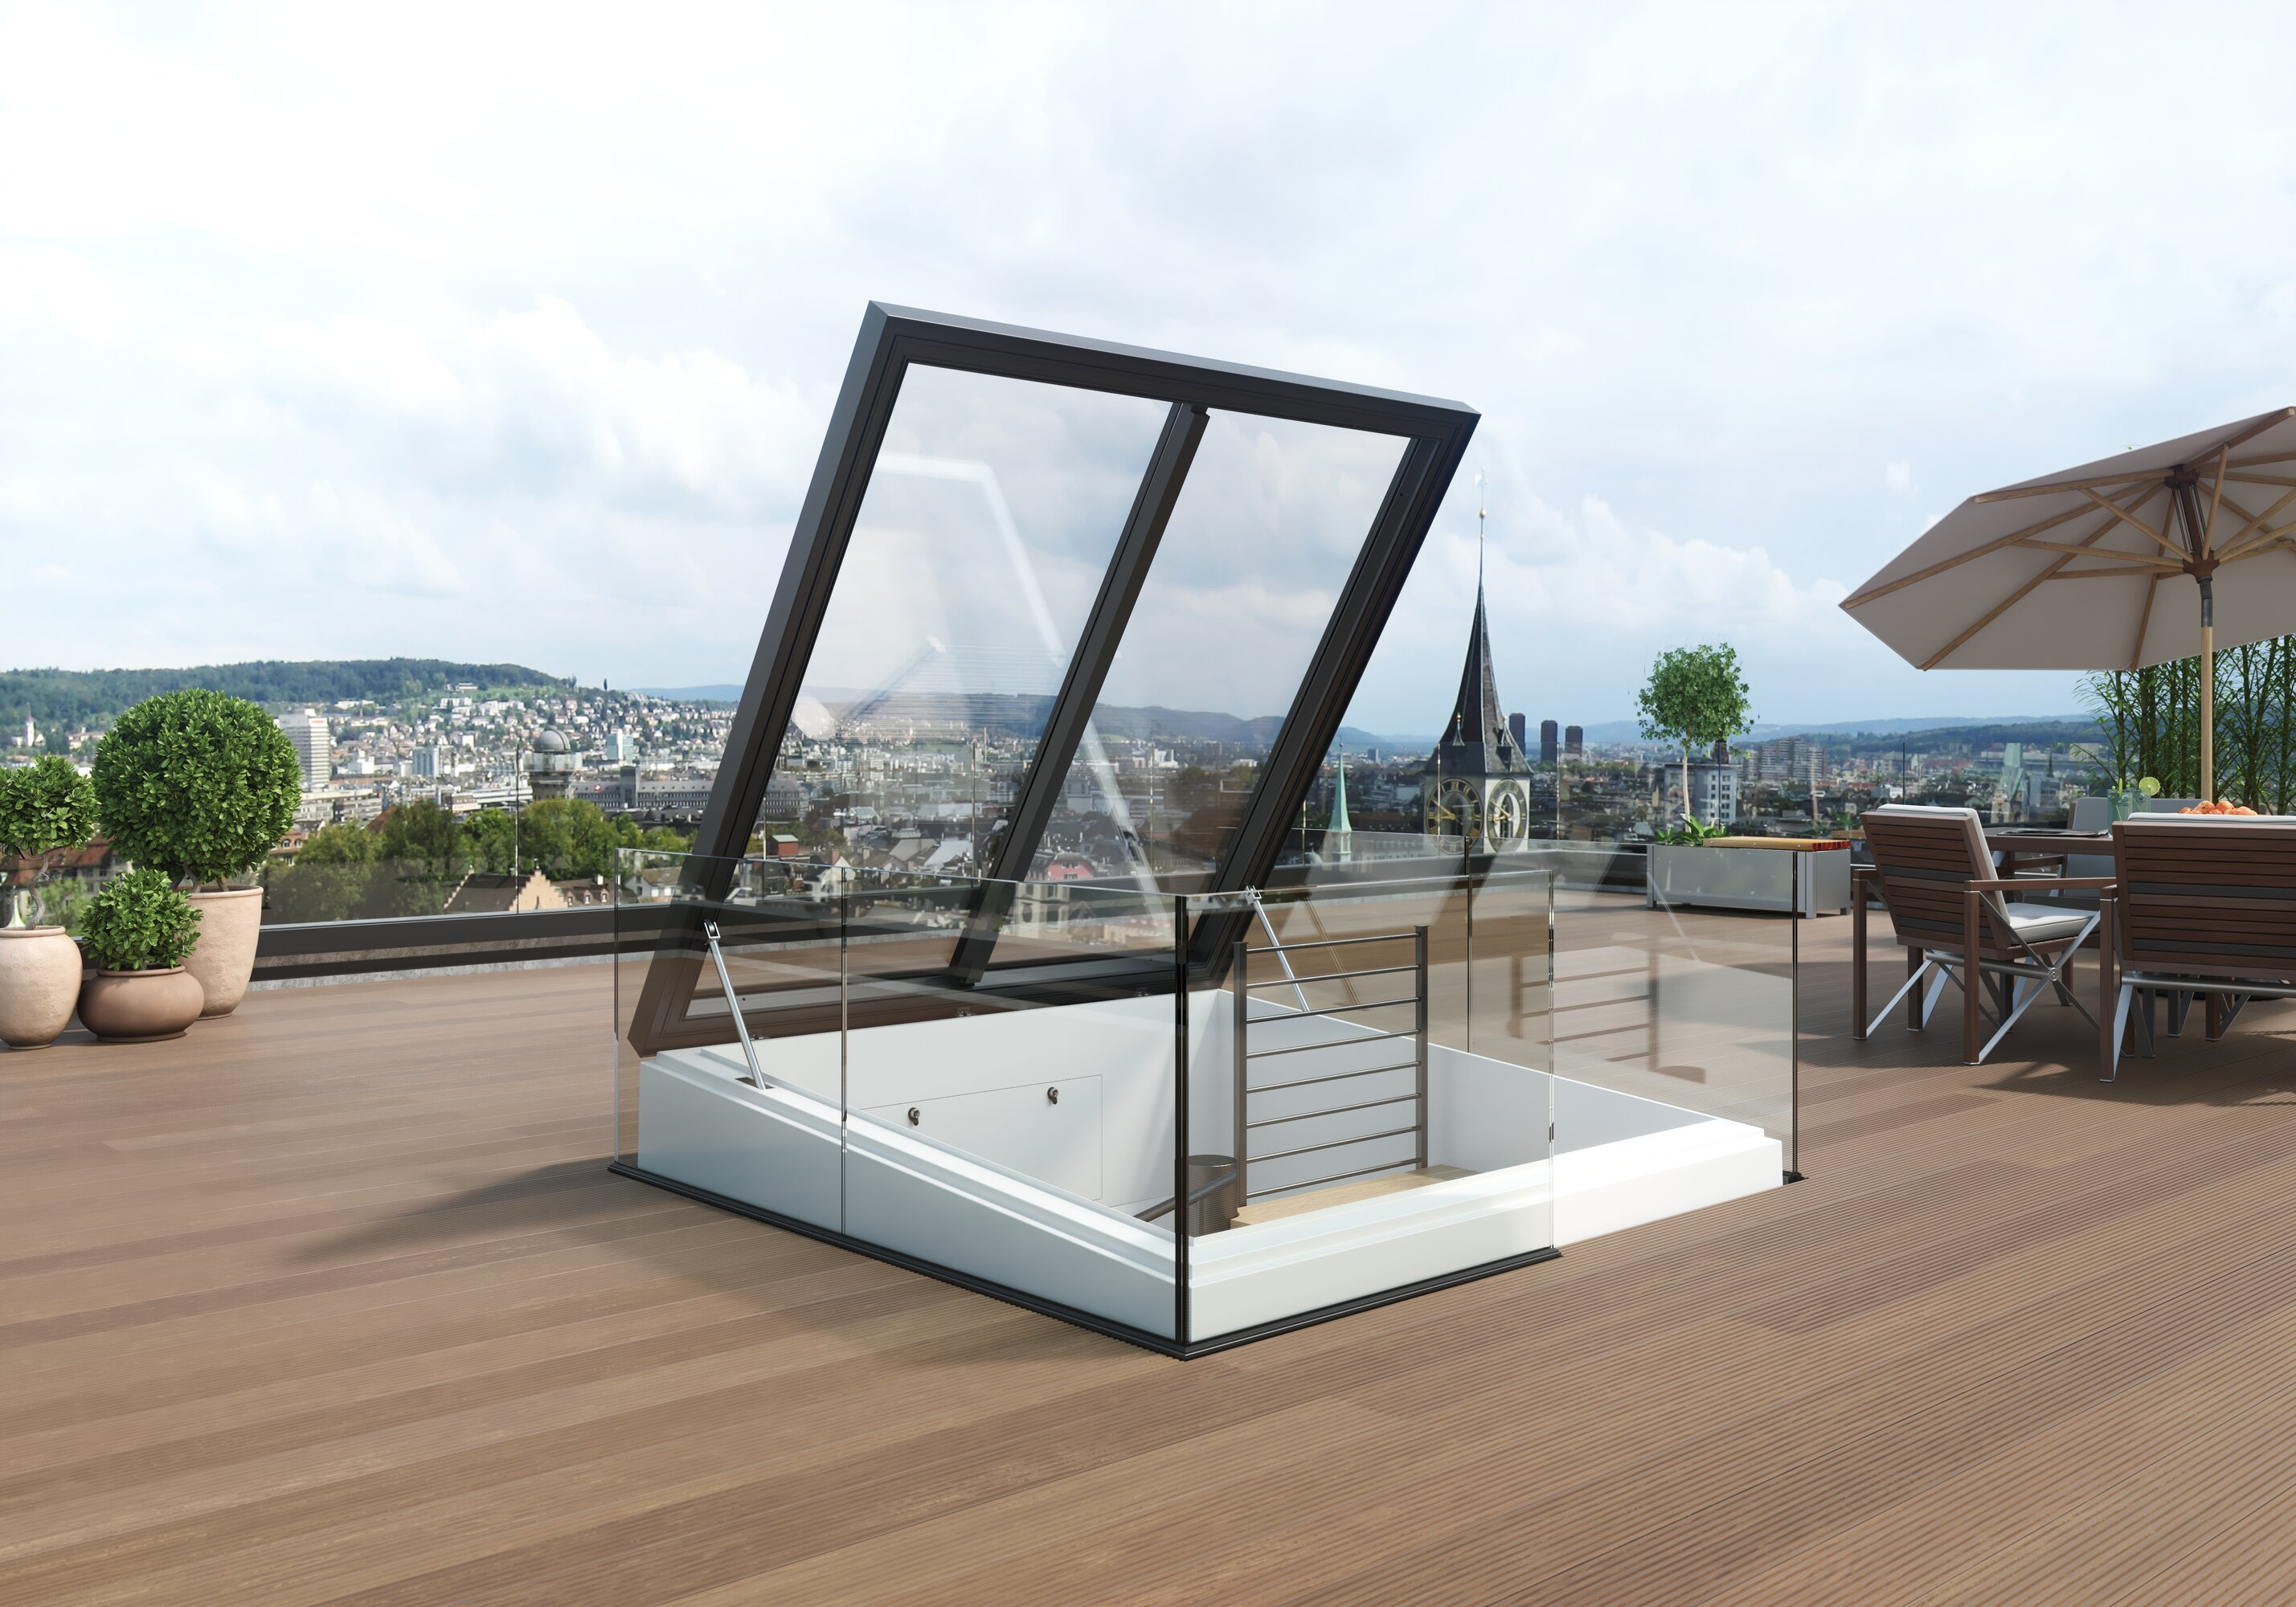 Square exit enables spiral staircase to roof terrace